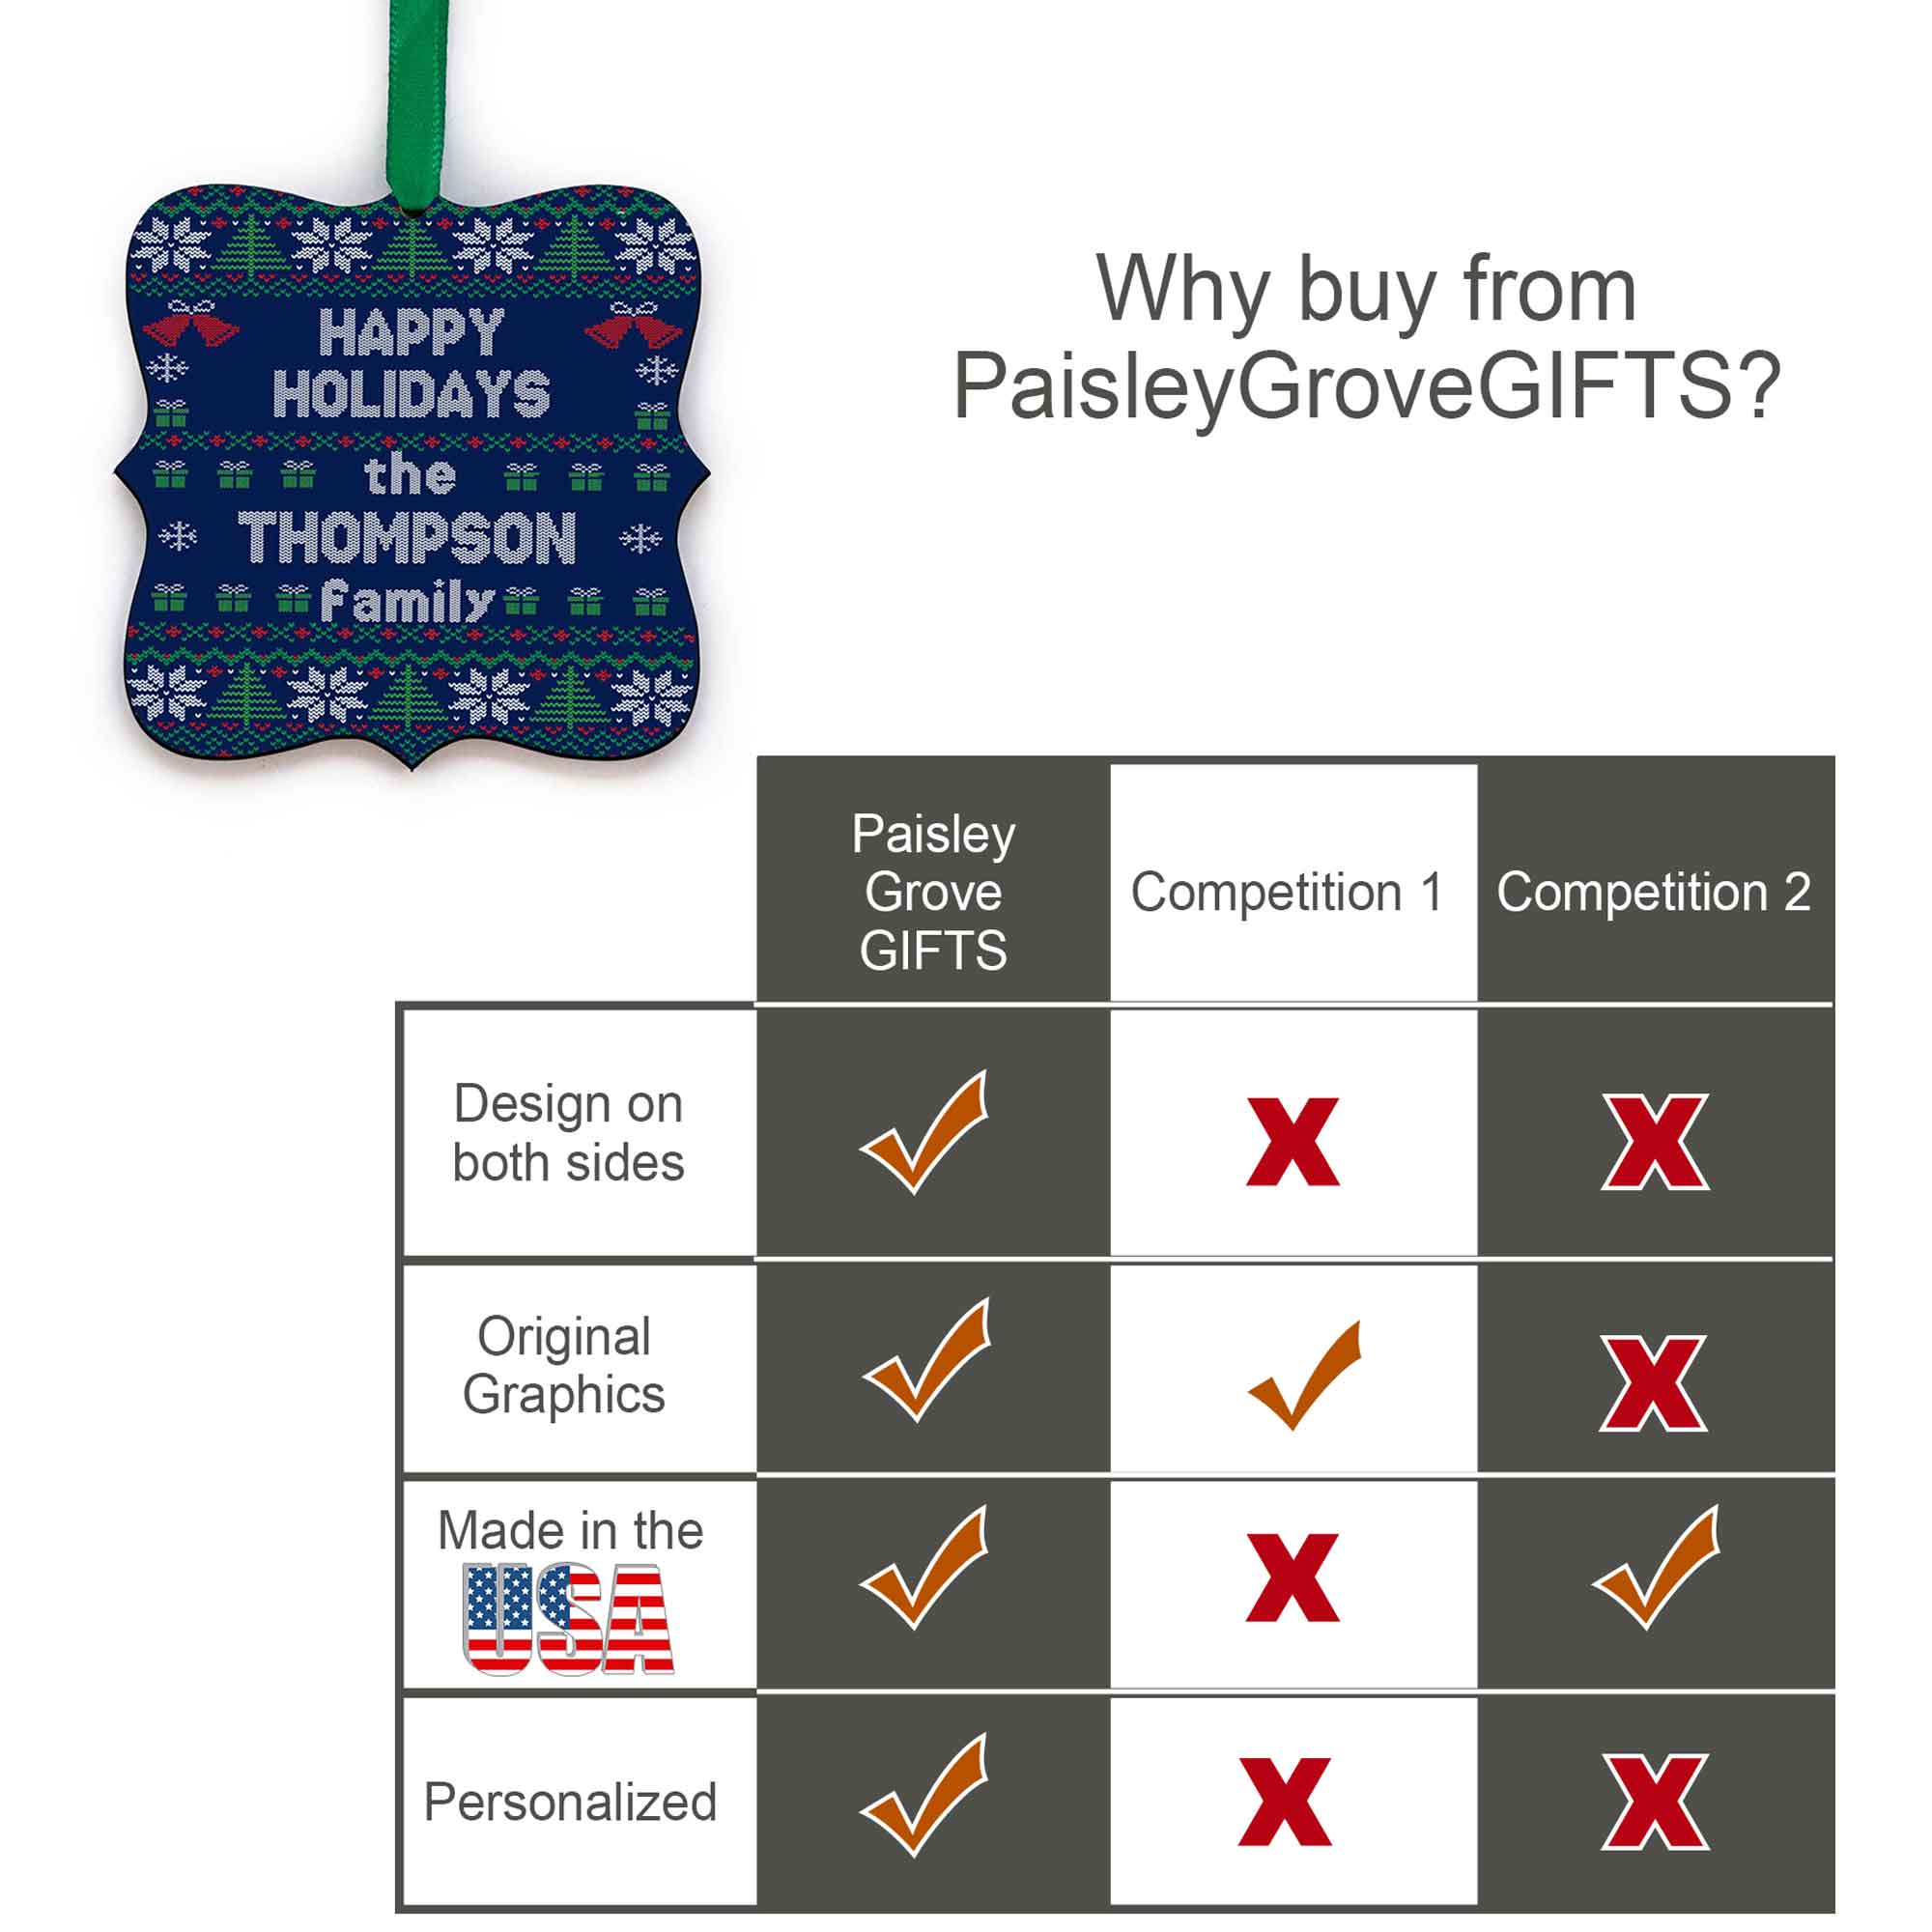 CopyrightPaisleyGroveGIFTS S517a Quality Ornament Superior to Others, Comparison Chart Personalized Last Name Ornament